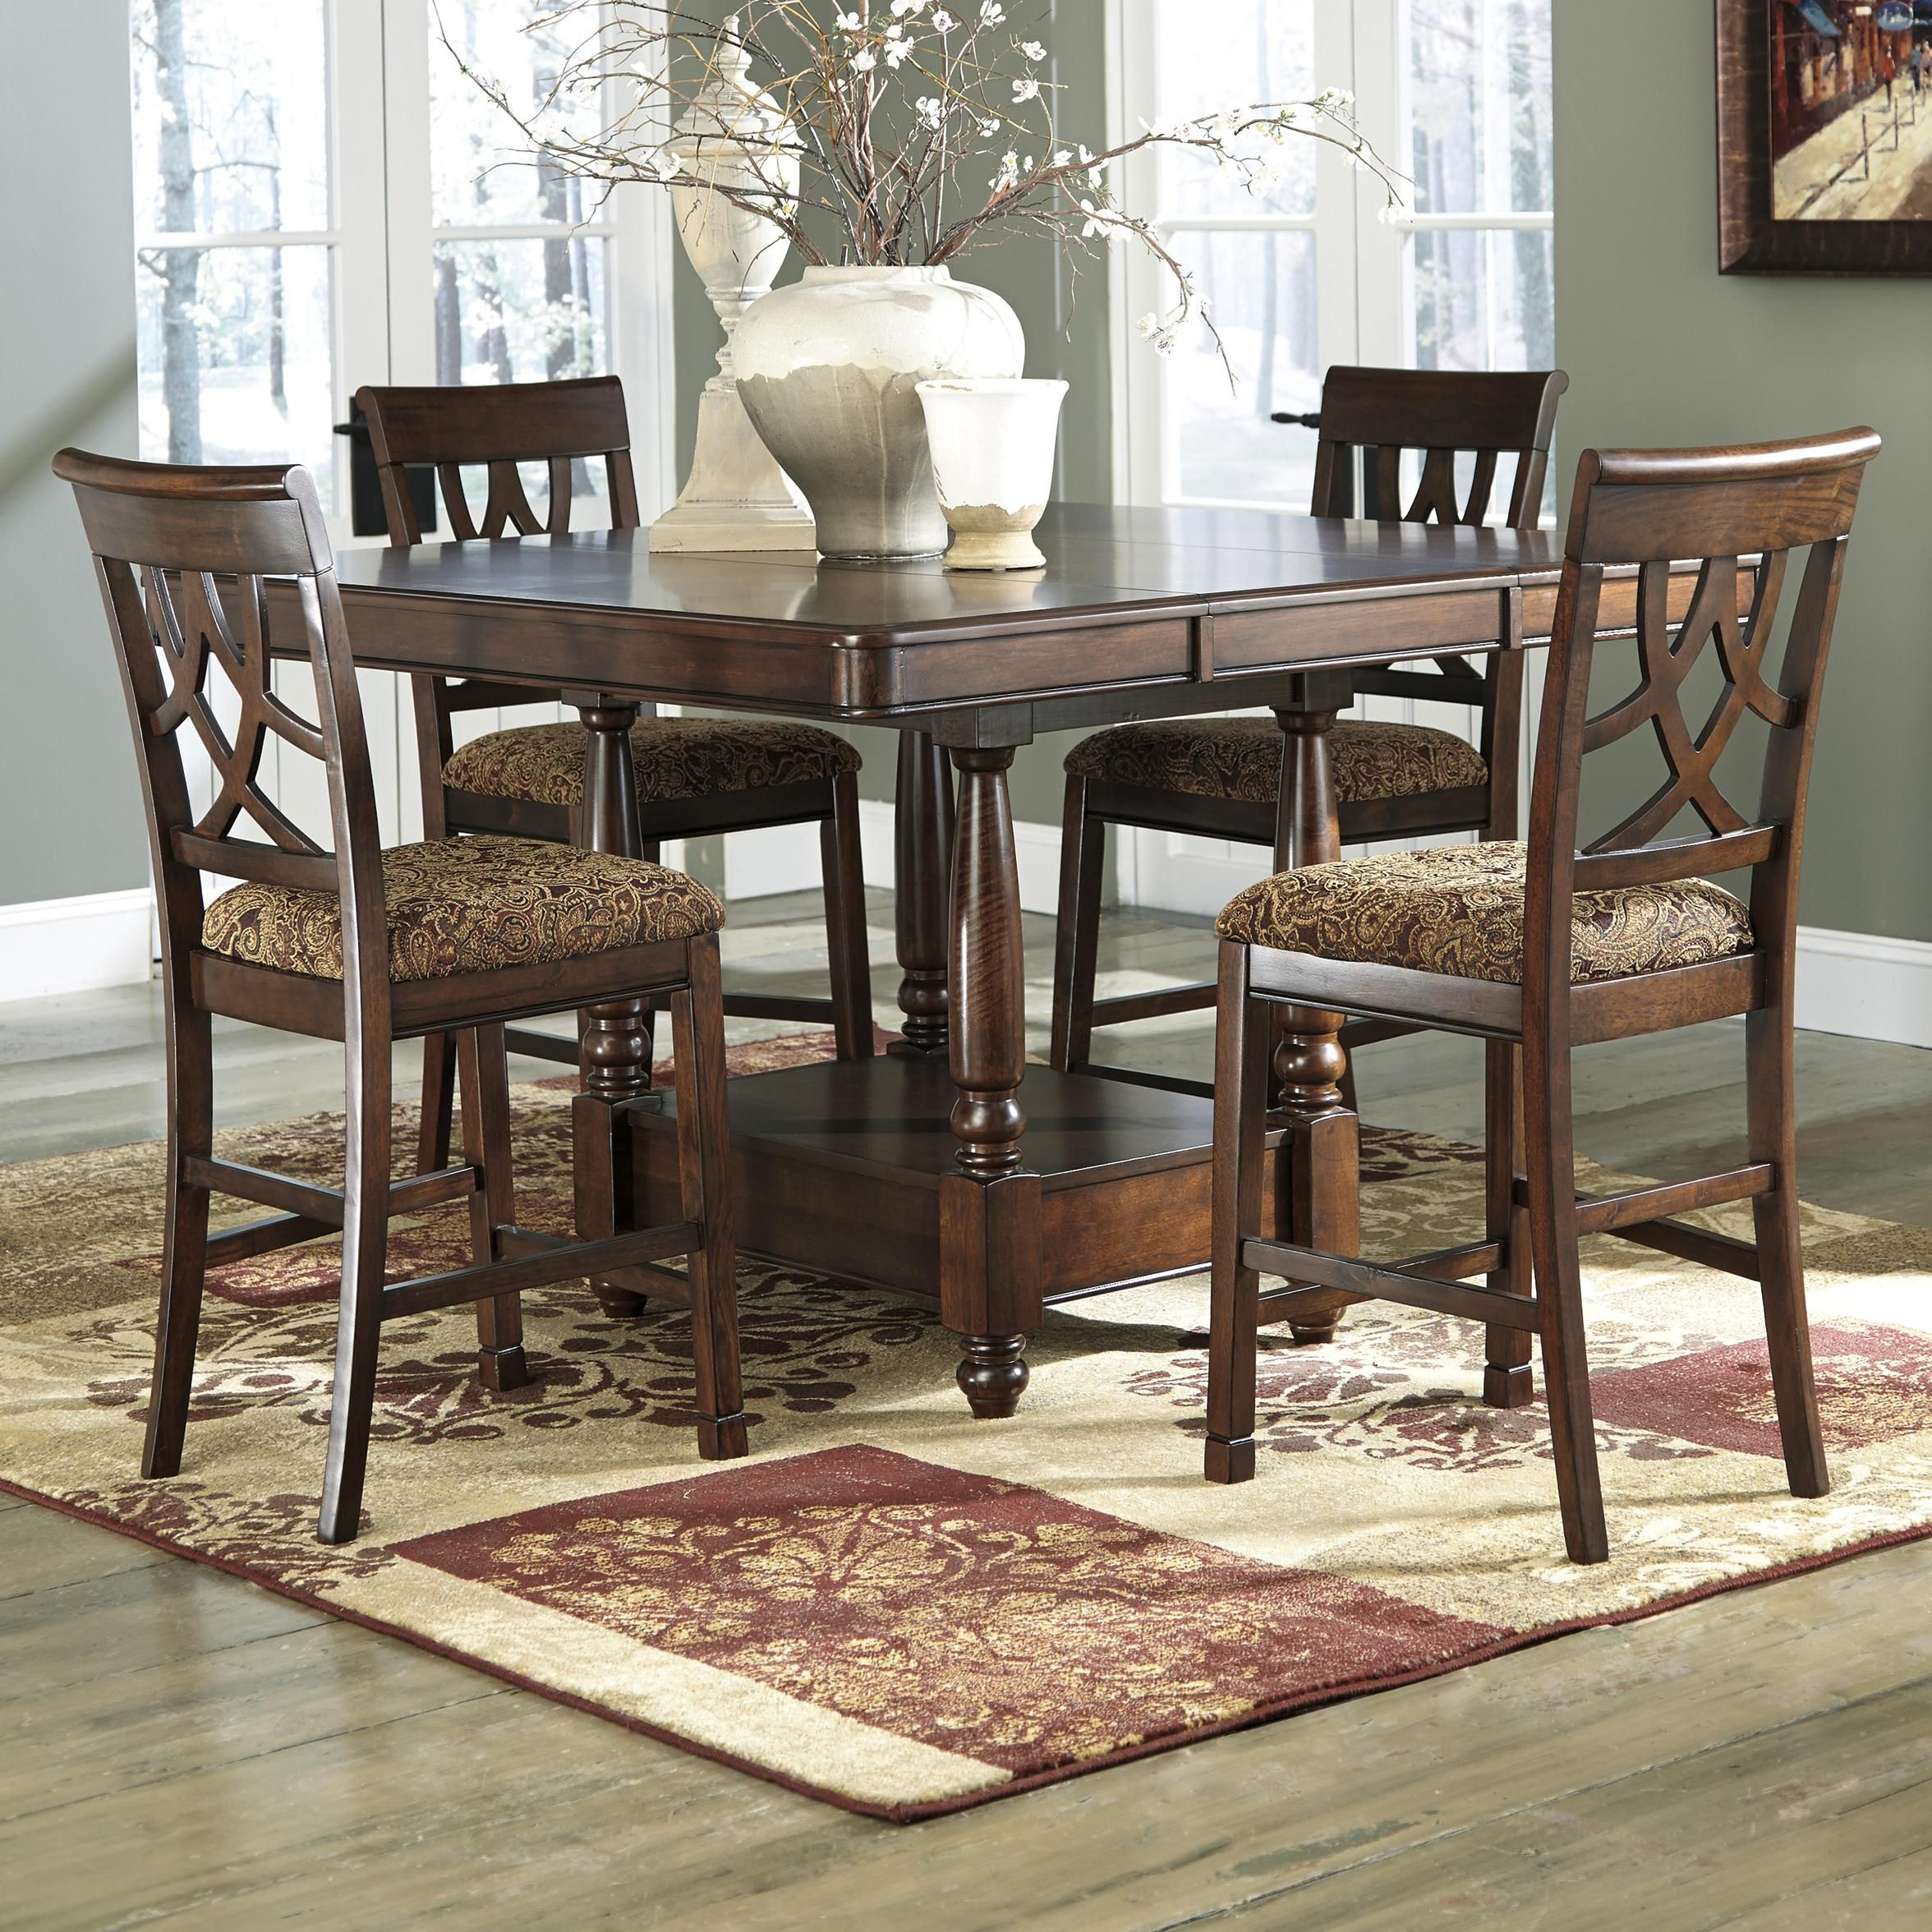 Leahlyn 5 Piece Dining Room Set Table And 4 Chairs By